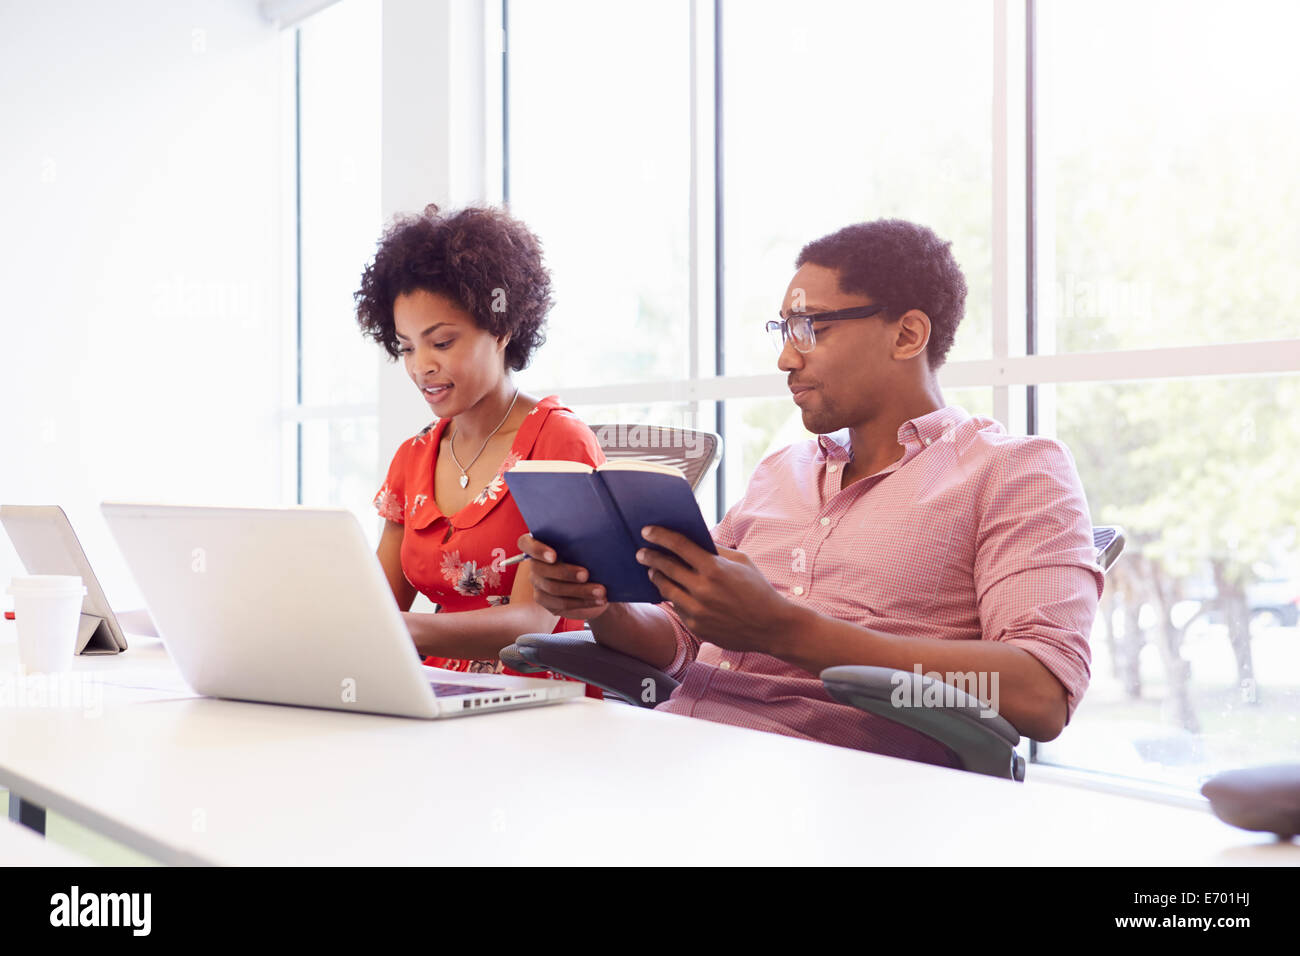 Two Creatives With Digital Tablet Working In Design Studio - Stock Image